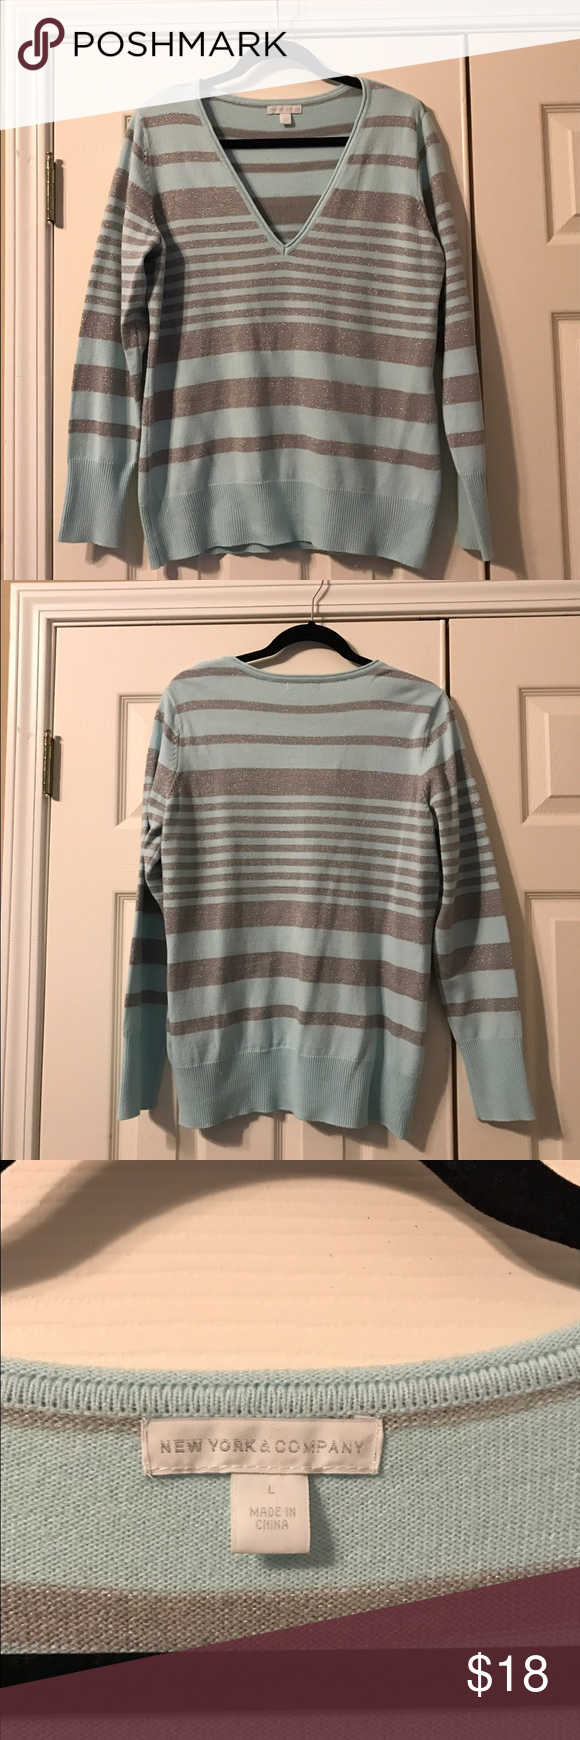 New York & Company V Neck striped sweater, Size L New York & Company V Neck striped sweater, Size Large. Light snowy blue and shimmery silver stripes. Beautiful and very gently worn. 95% Acrylic, 3% Polyester, 2% Metallic. All of my items are from my smoke and pet free home. Please ask any questions and thanks for shopping my closet! ❄️ New York & Company Sweaters V-Necks